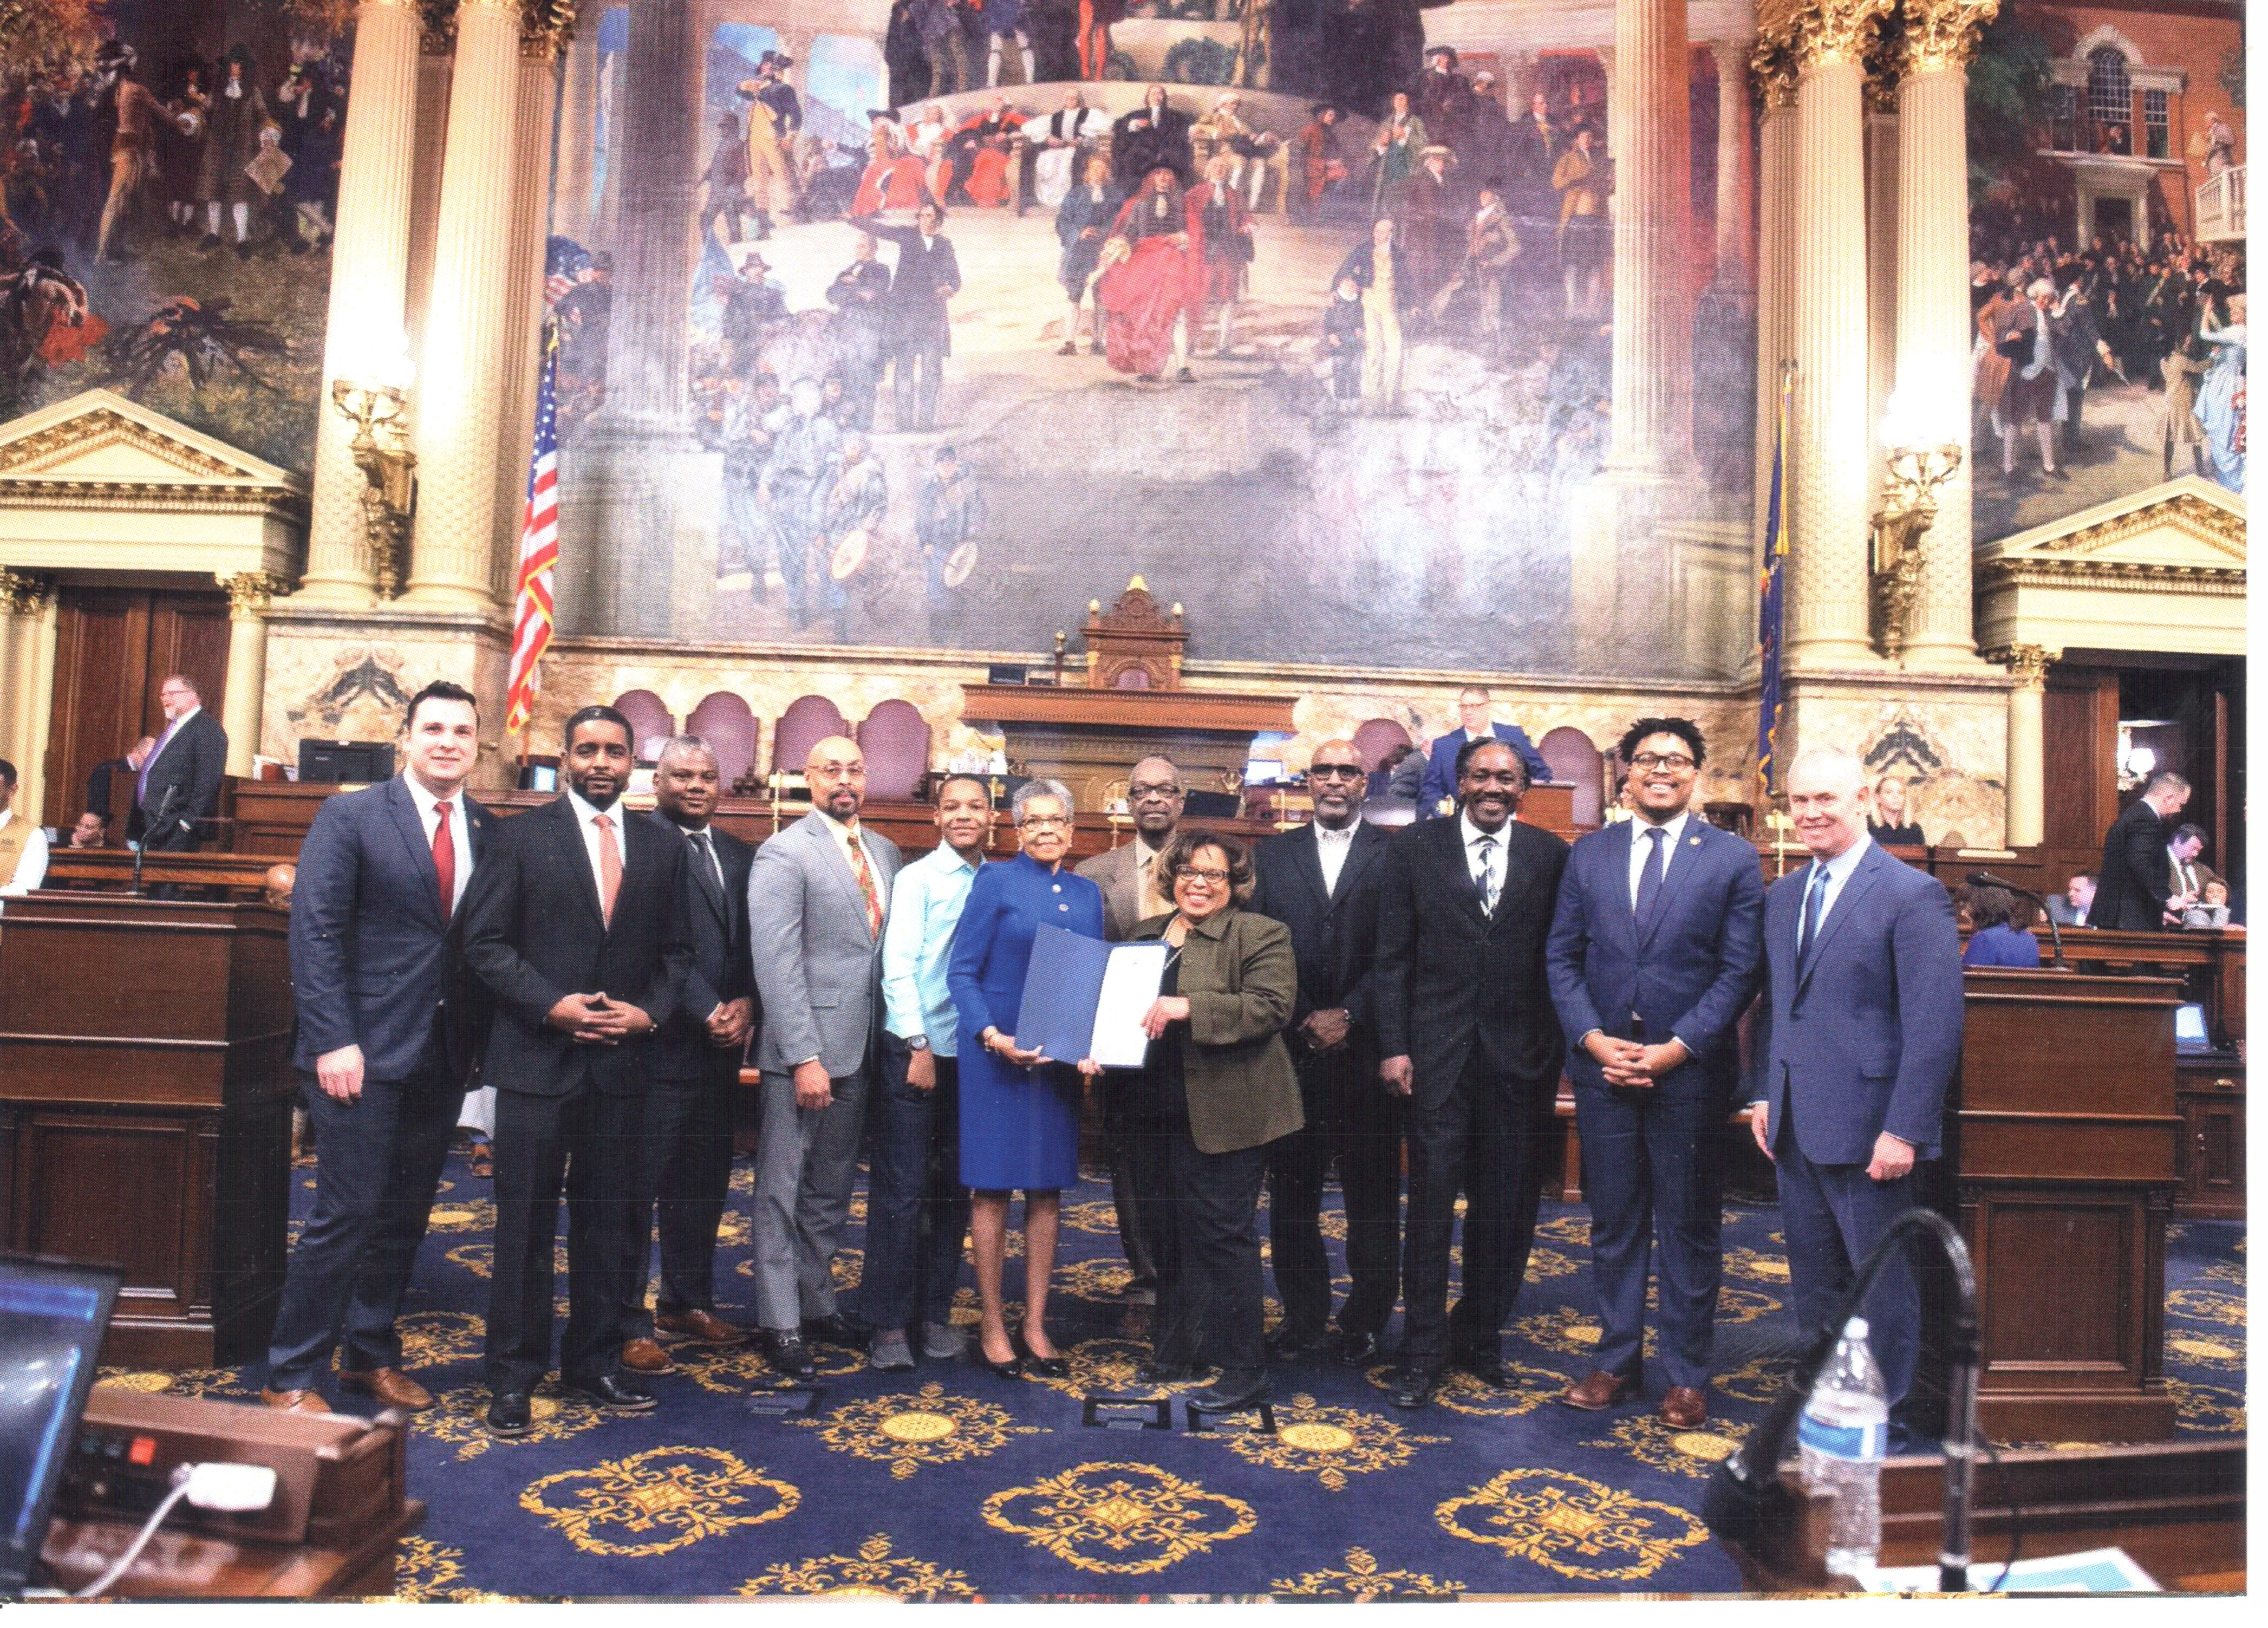 OICA Supports Fighting Chance Act at PA State Capital